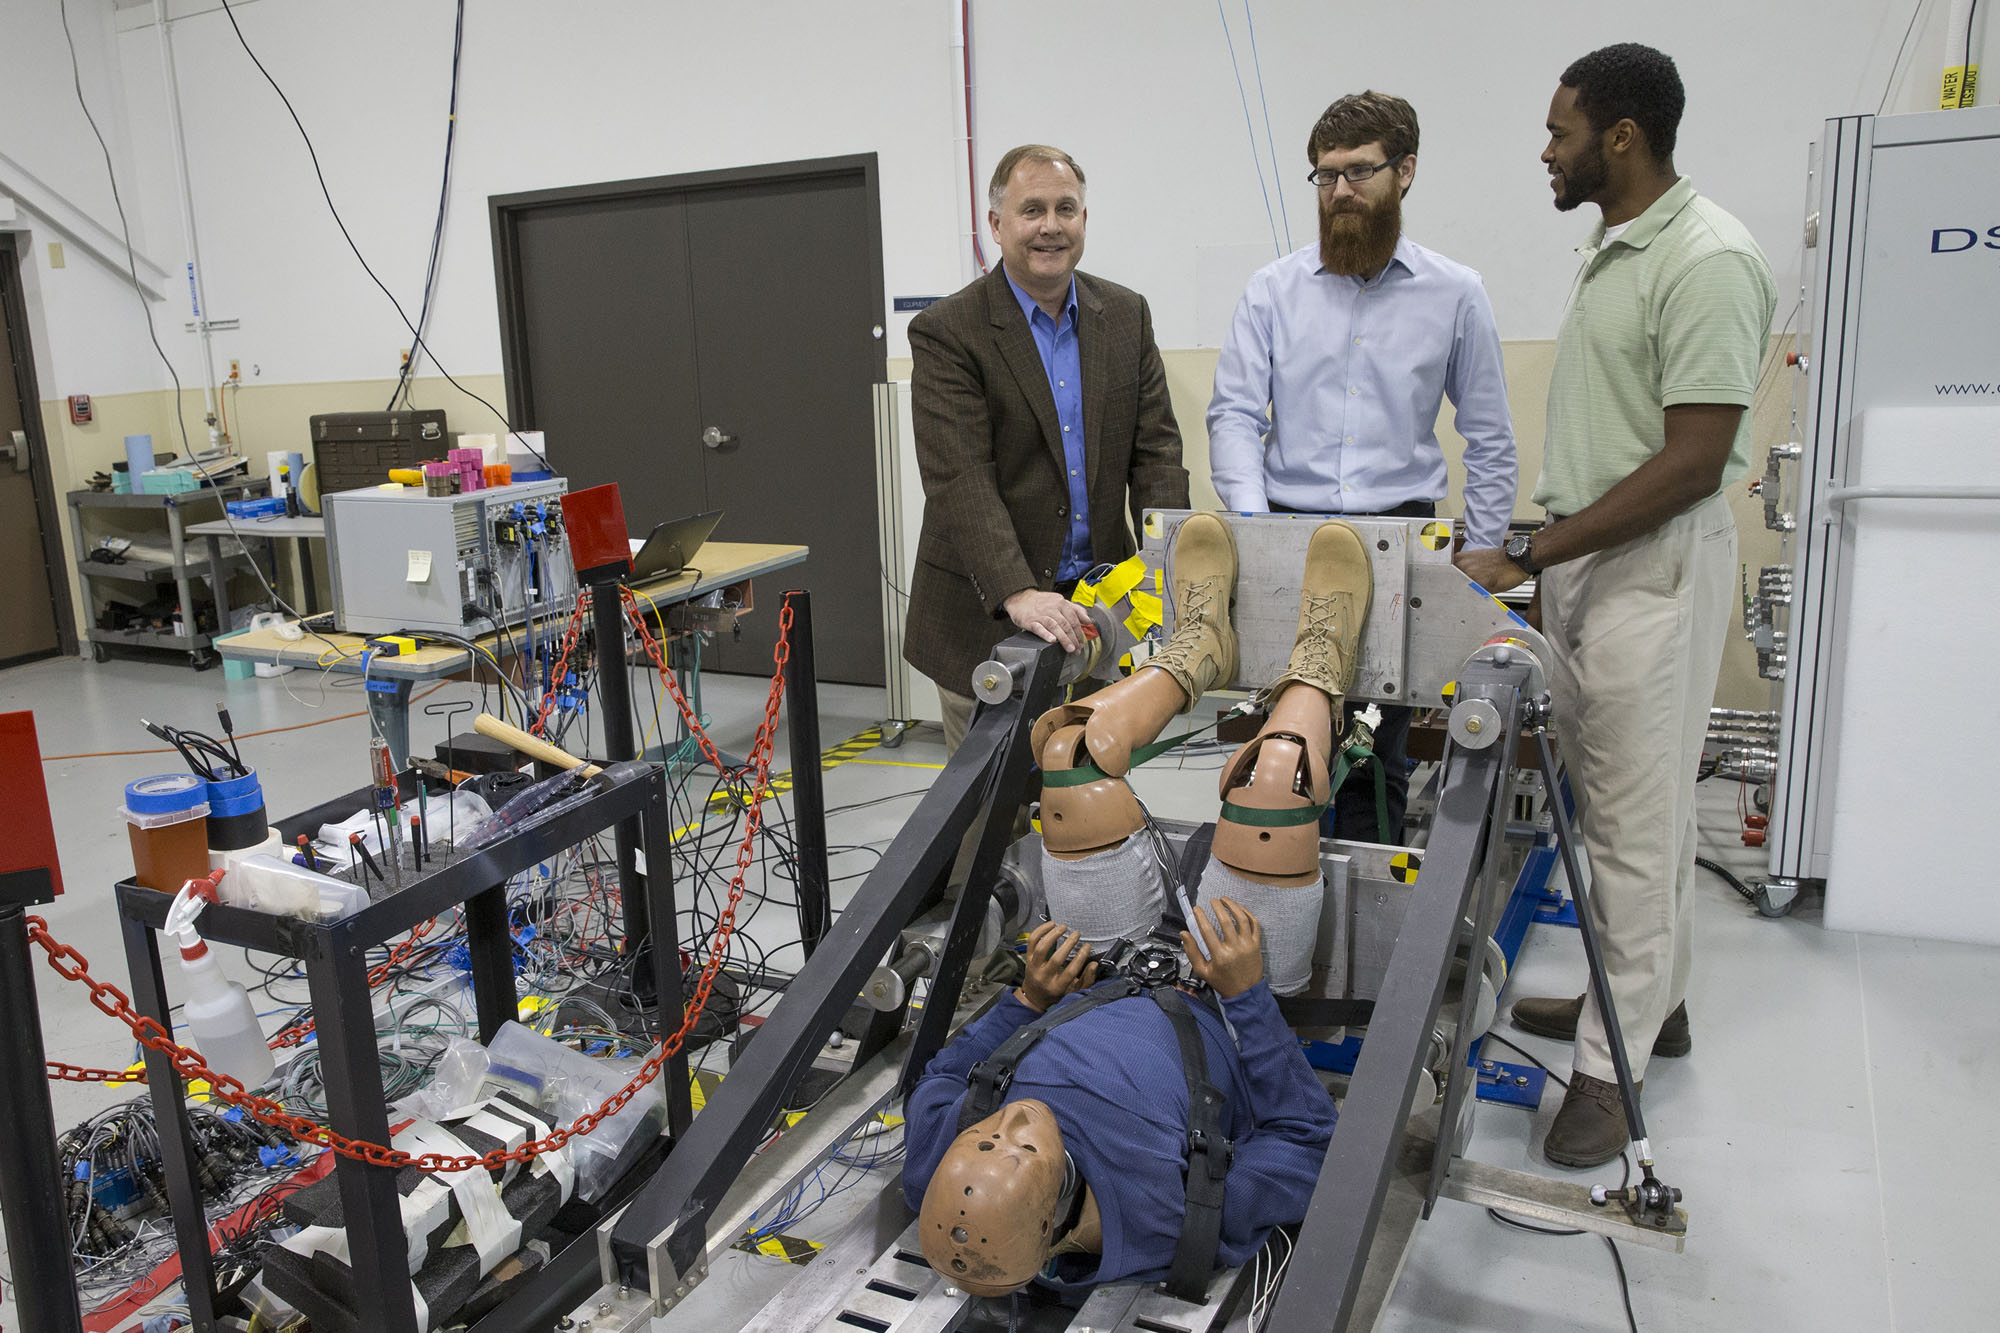 Robert Salzar, left, and his research team members, Aaron Alai, center, and Kyvory Henderson, right, discuss a device they designed for studying blast injuries.